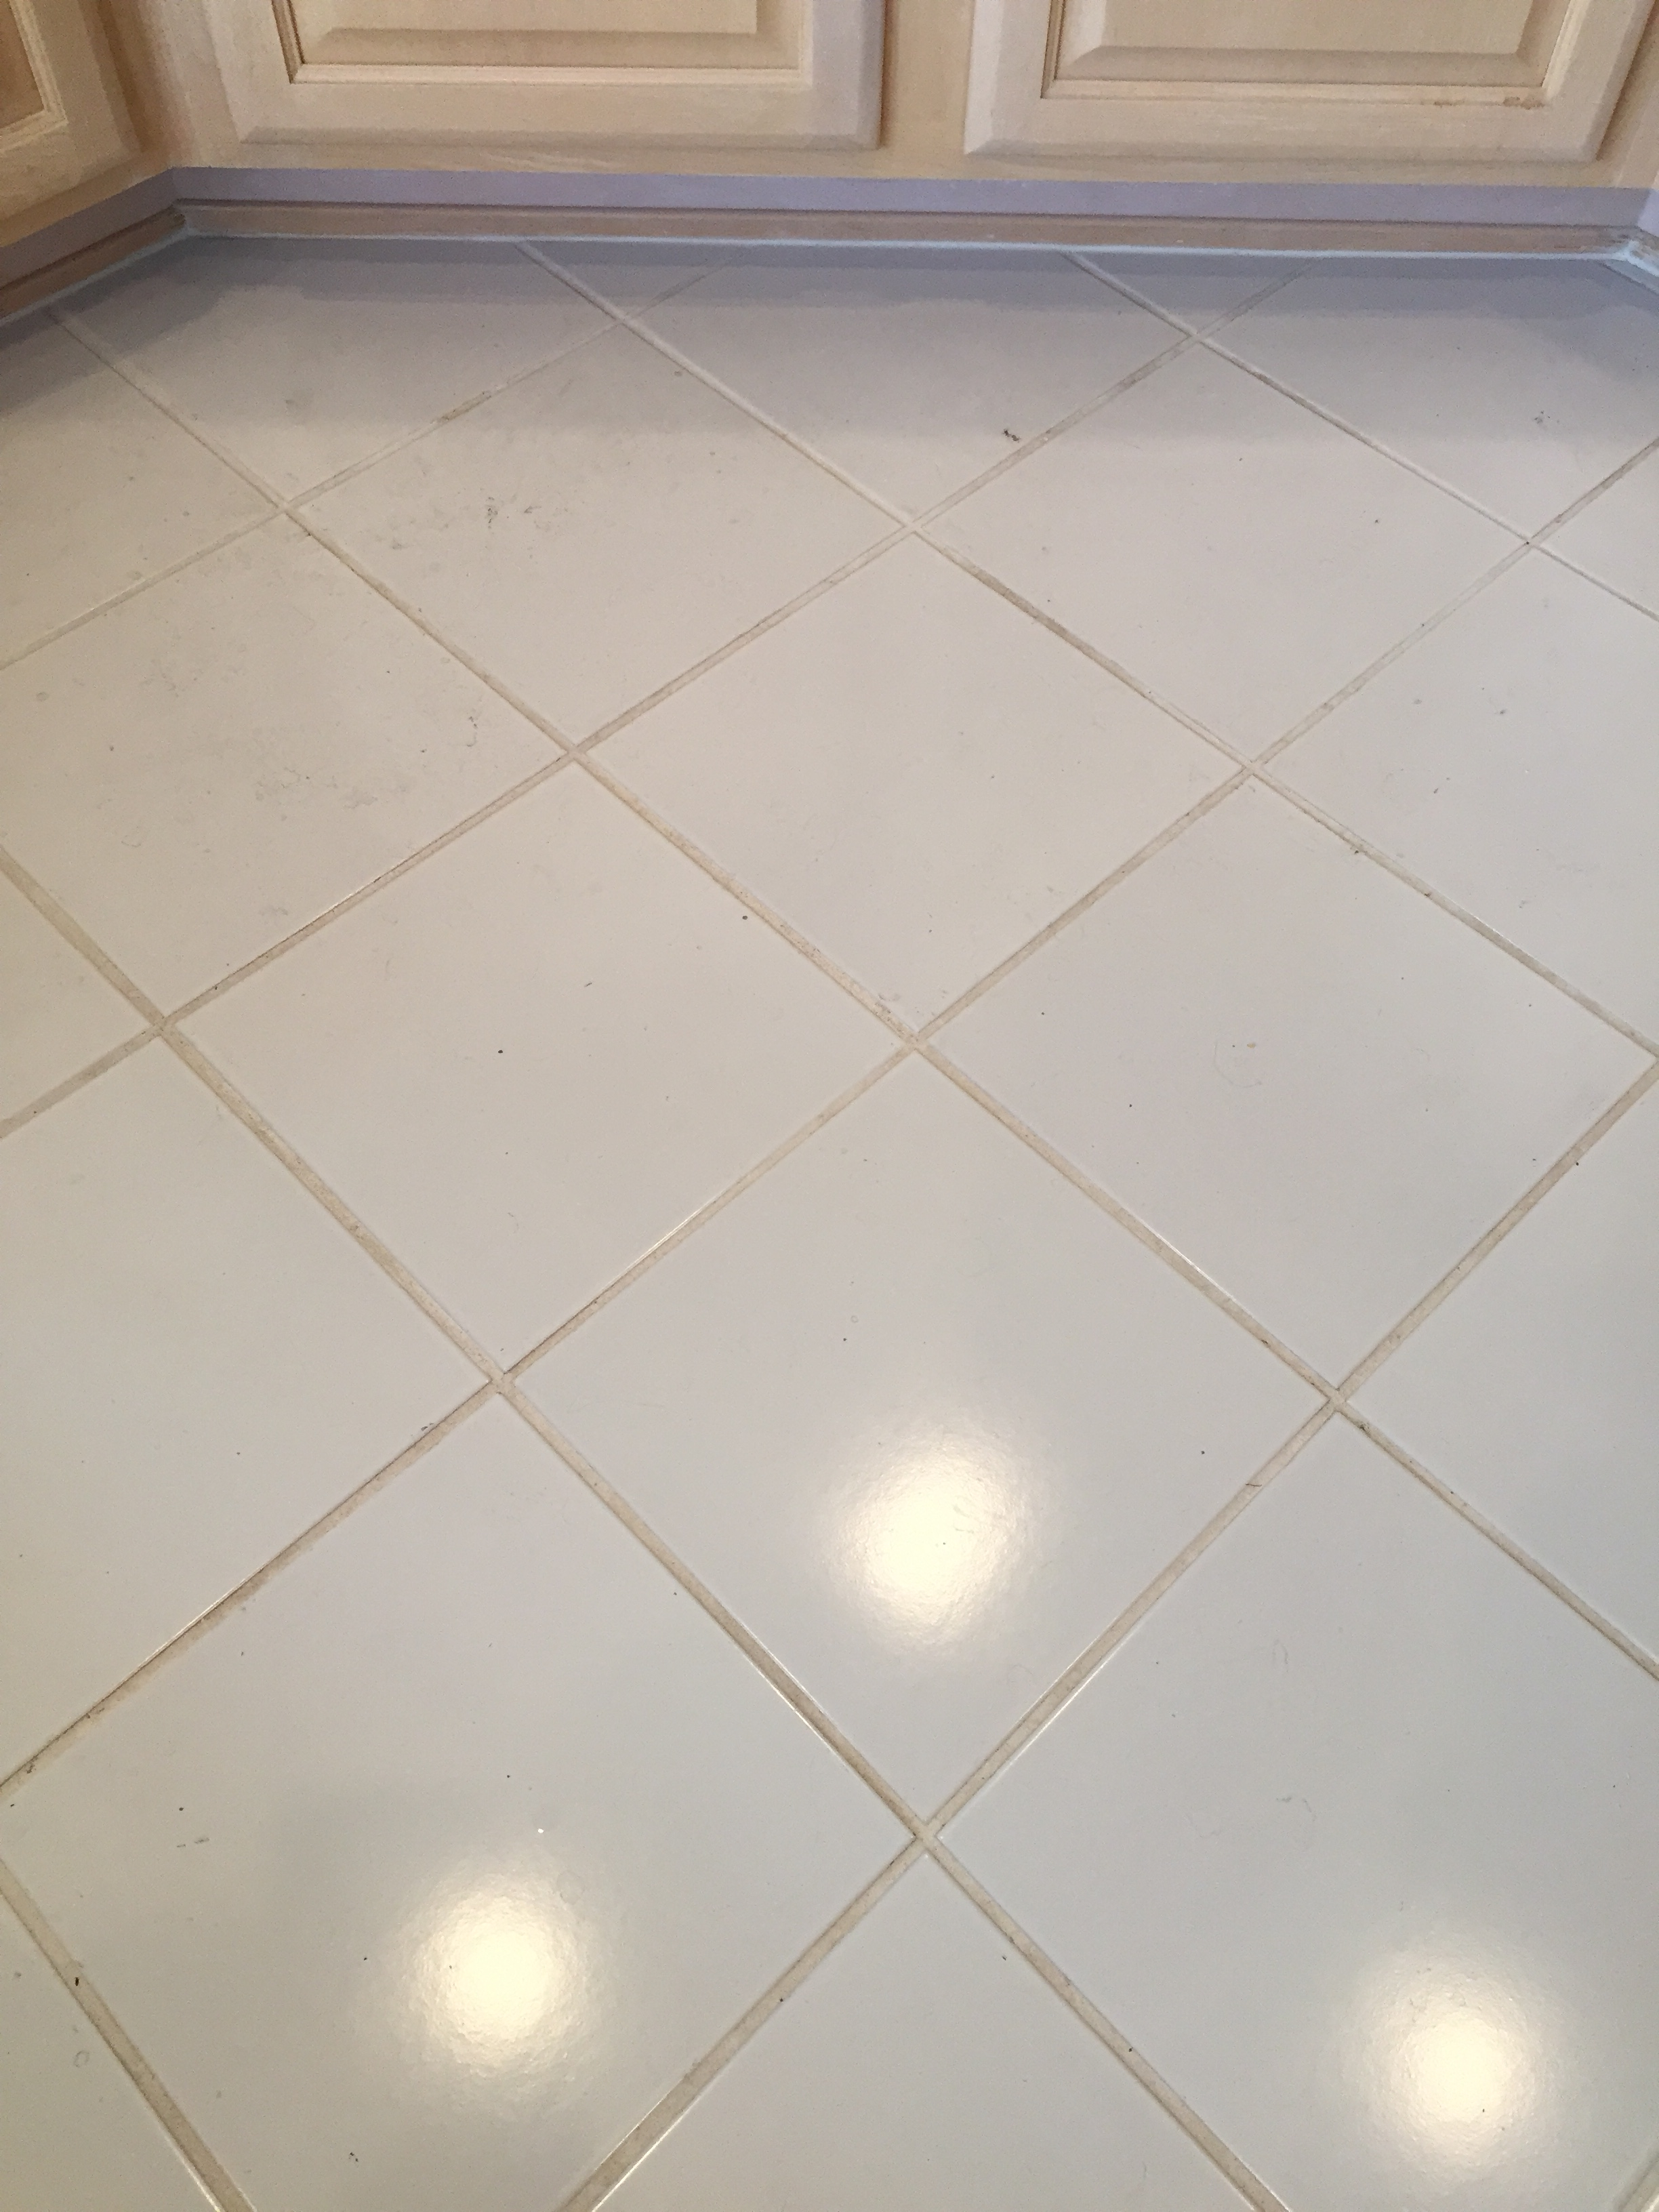 Porcelain tile cleaning beforeafter advanced surface solutions before color seal dailygadgetfo Image collections